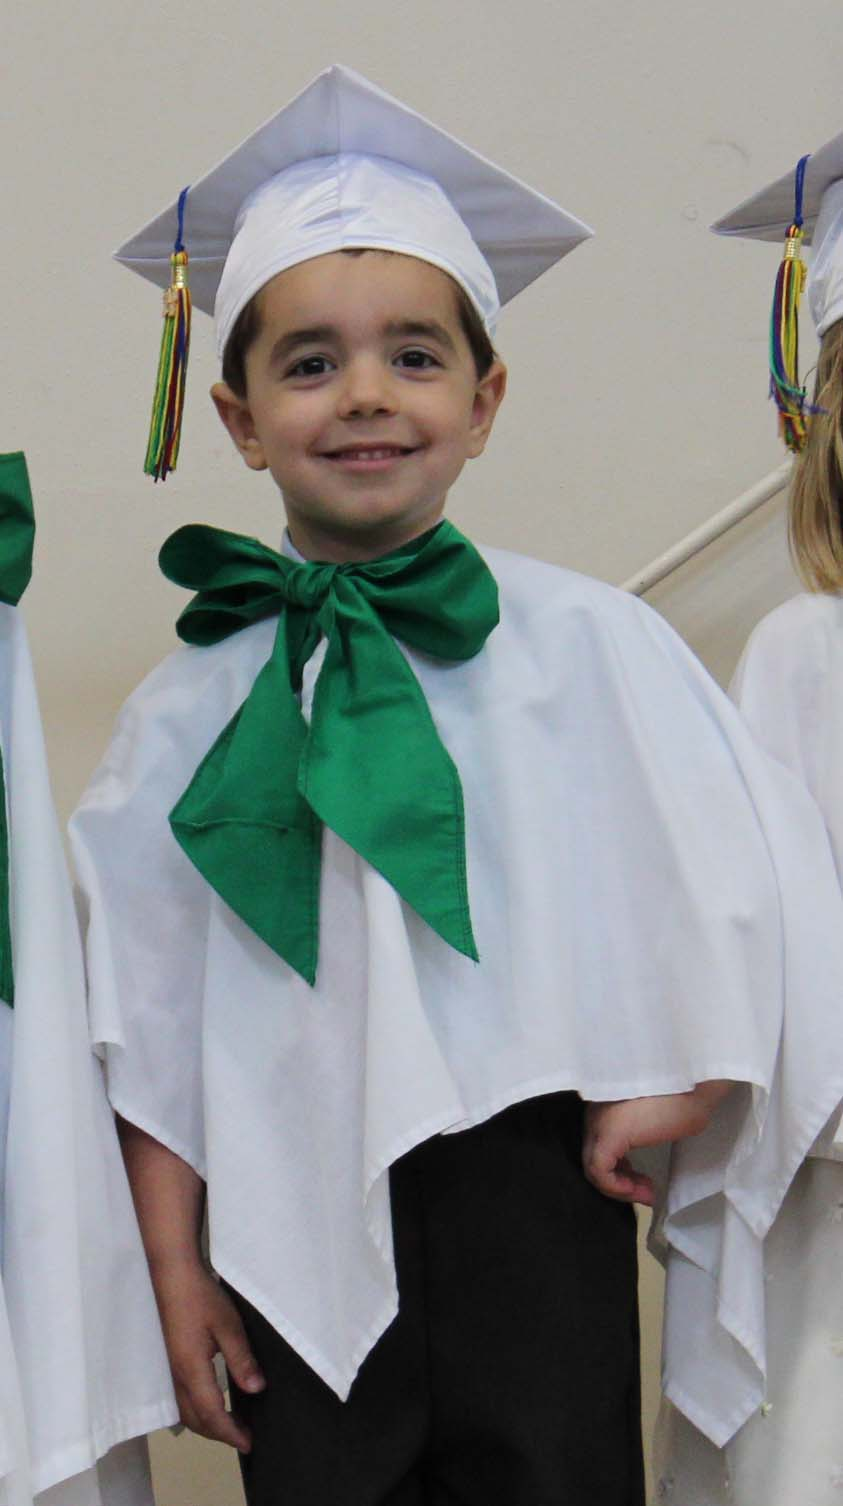 Nicholas' preschool graduation